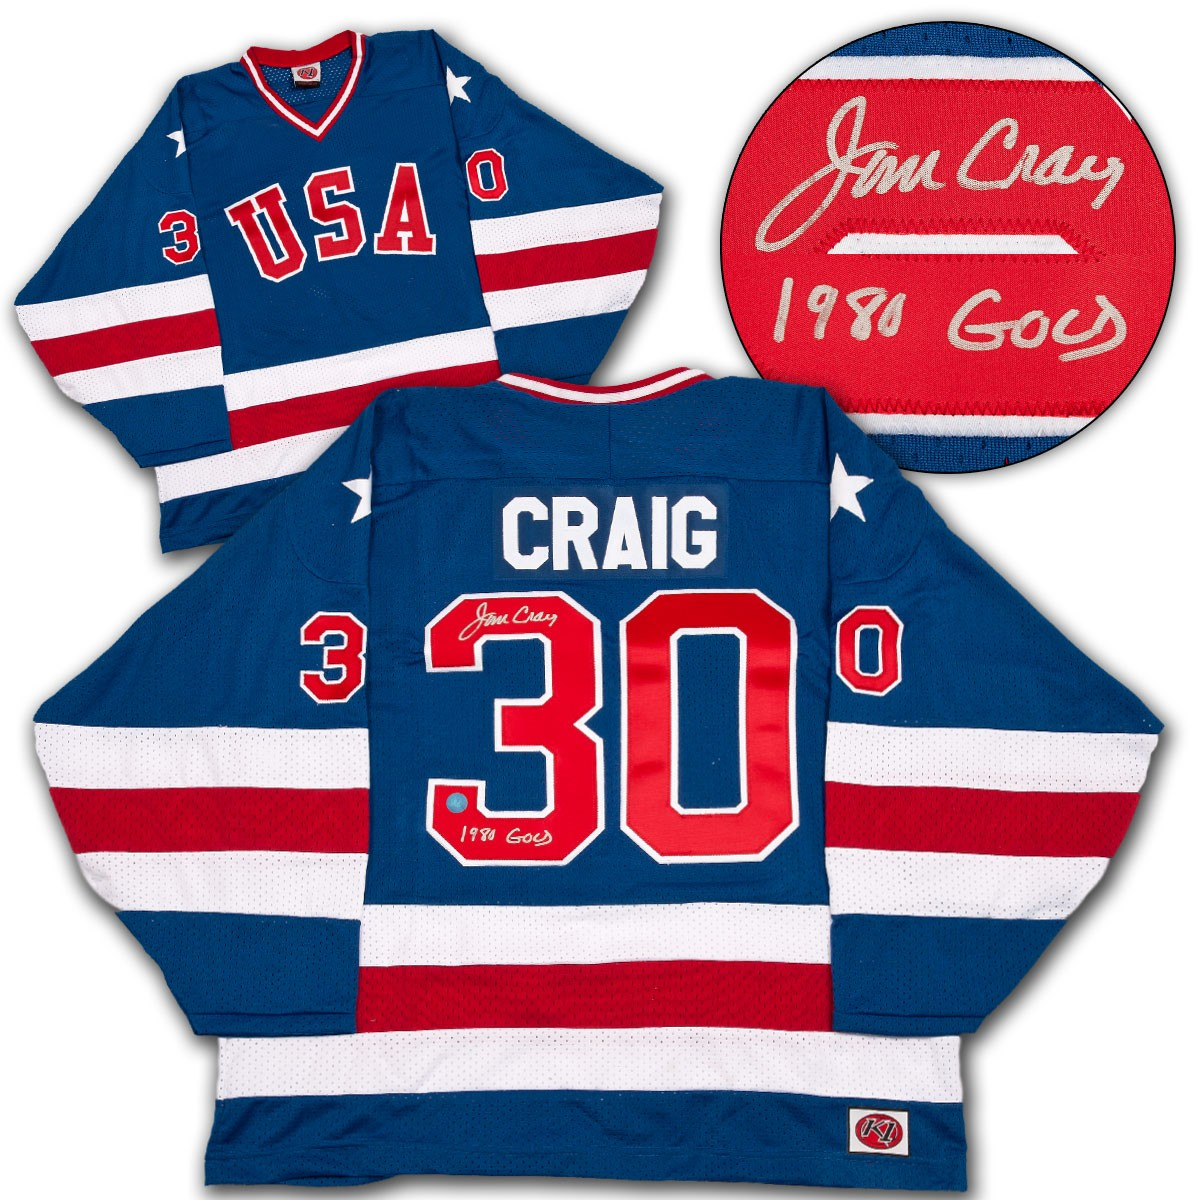 Jim Craig Team Usa Autographed Signed Olympic Jersey